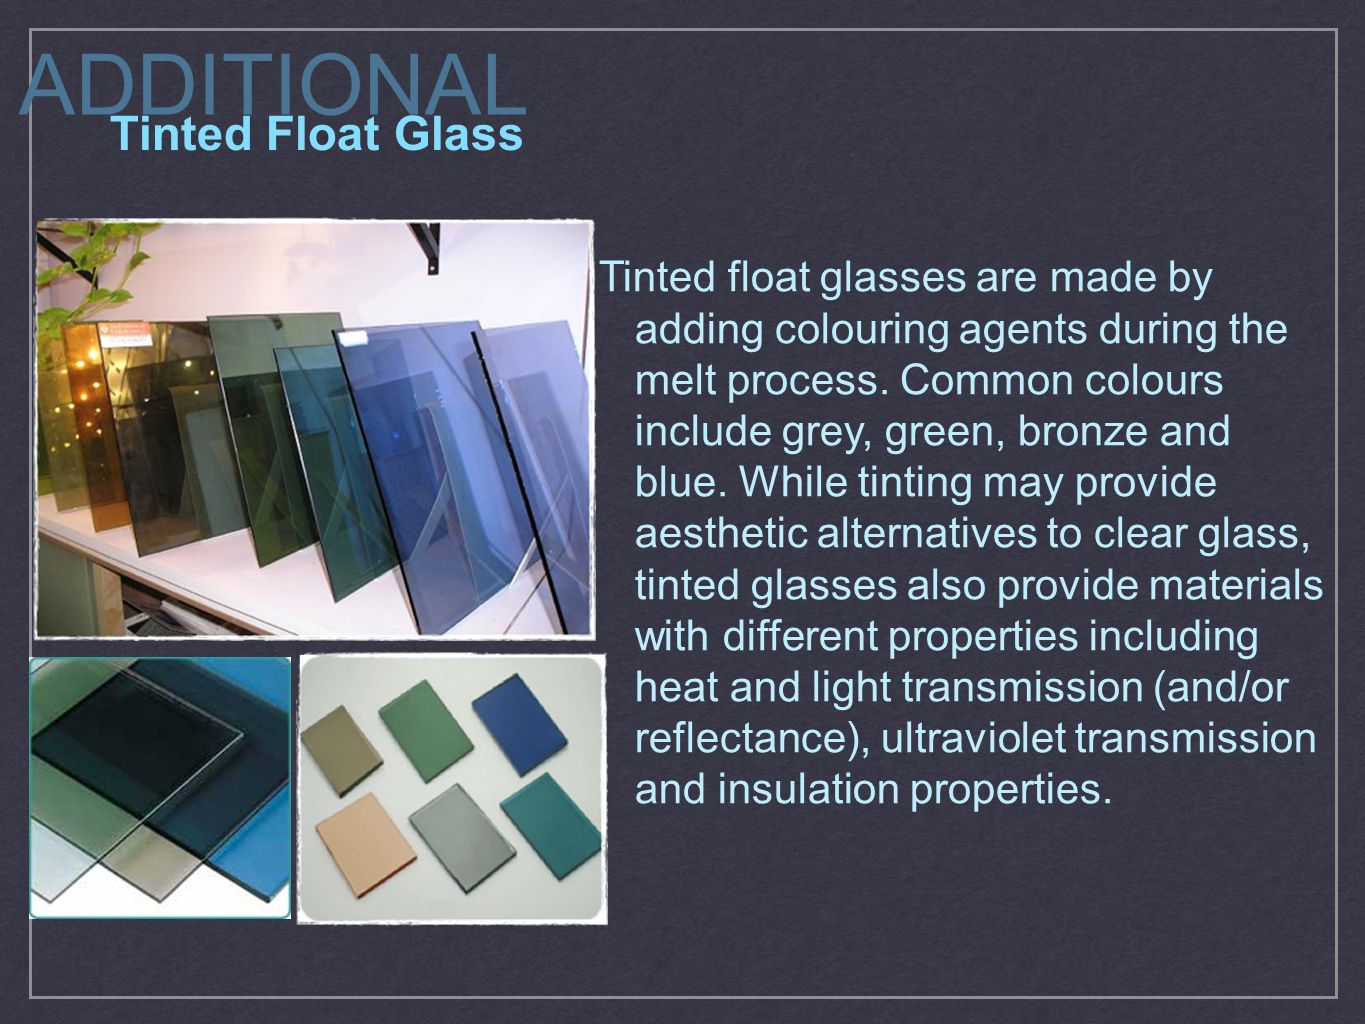 Tinted float glasses are made by adding colouring agents during the melt process.